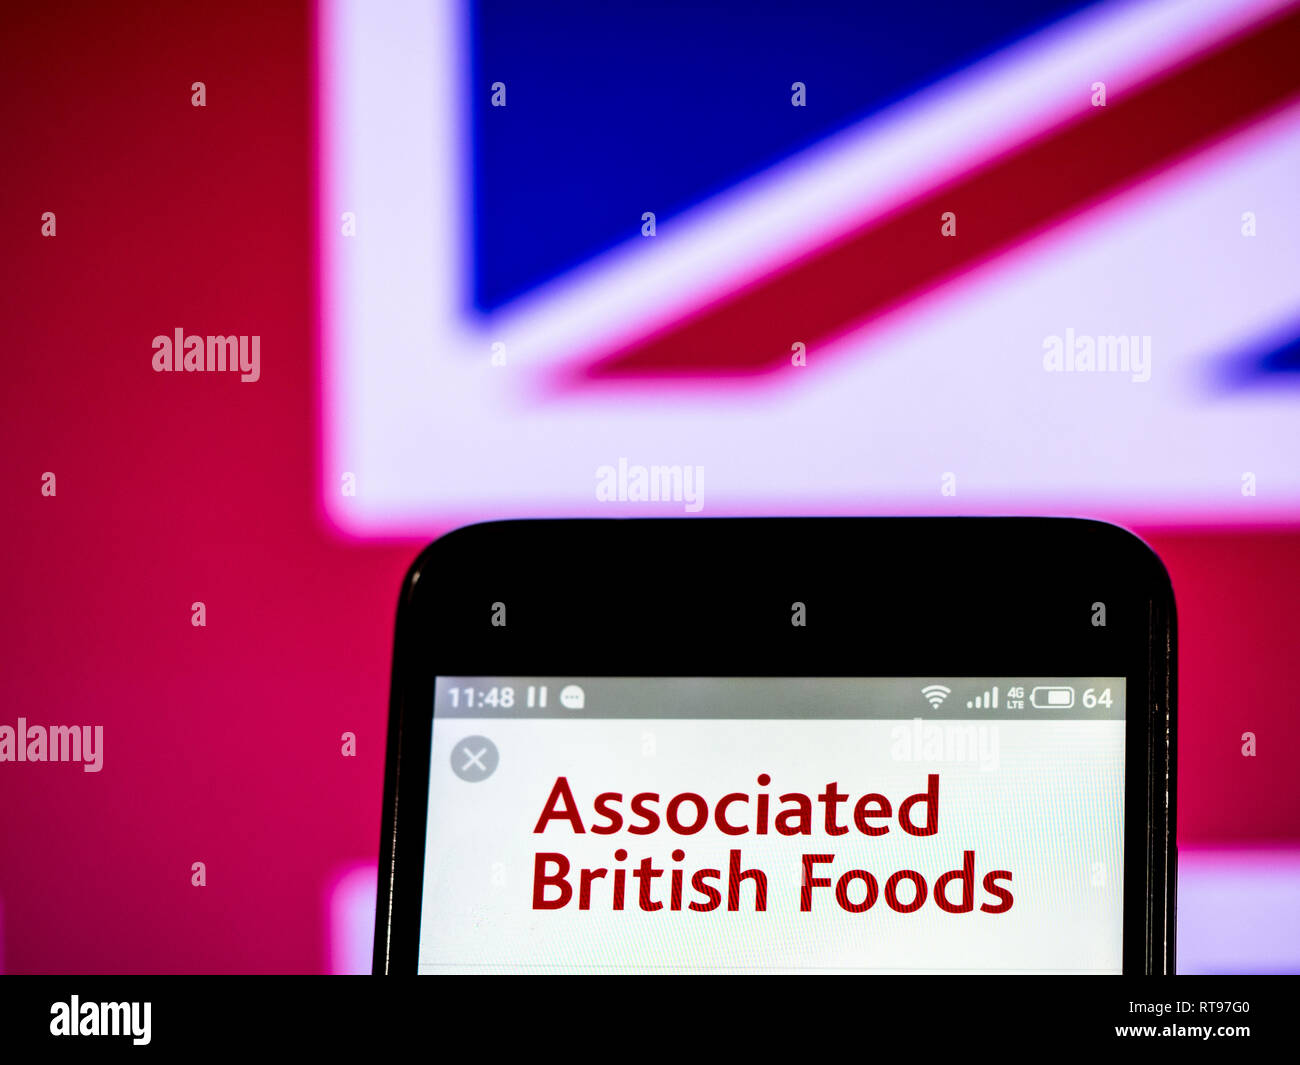 Associated British Foods plc logo seen displayed on smart phone - Stock Image